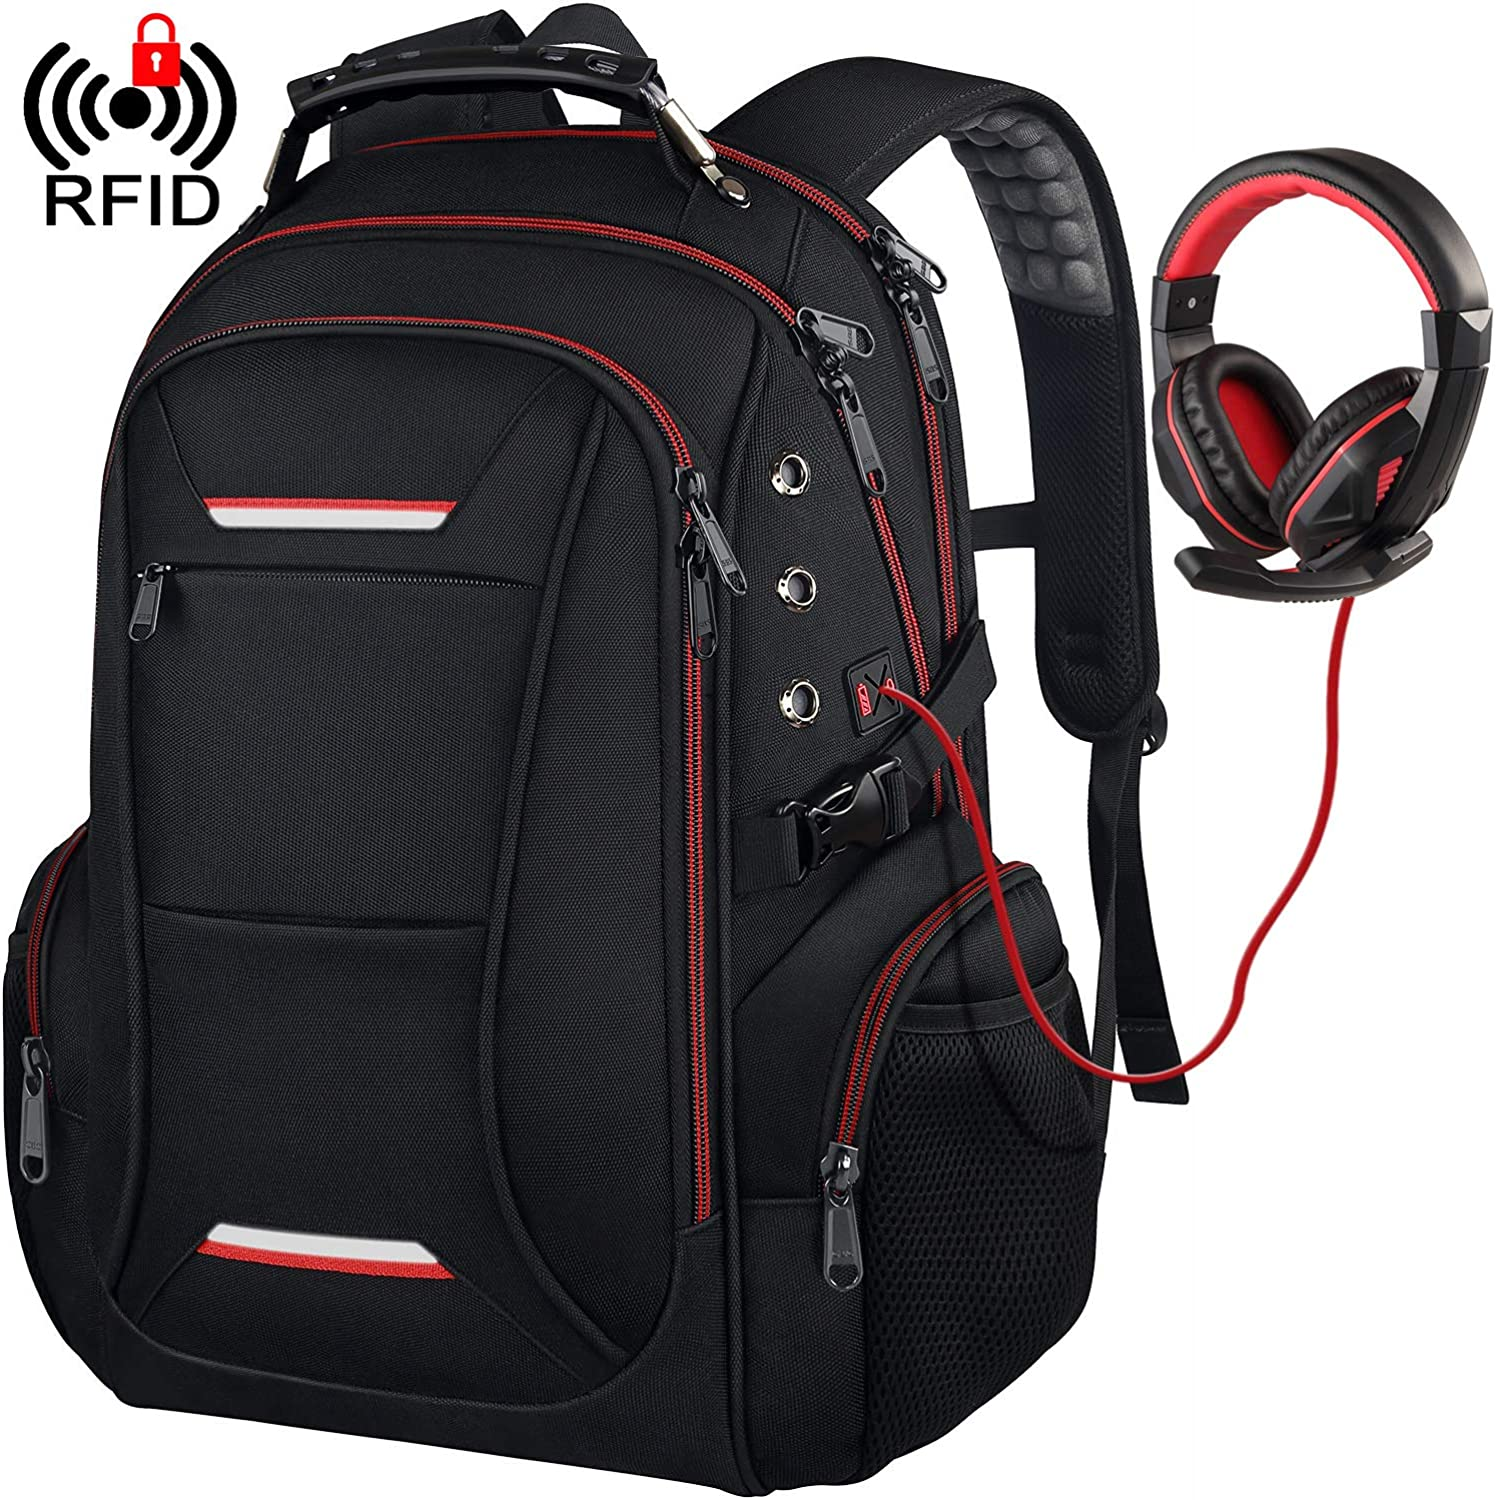 Top 8 Multi Use Laptop Bag